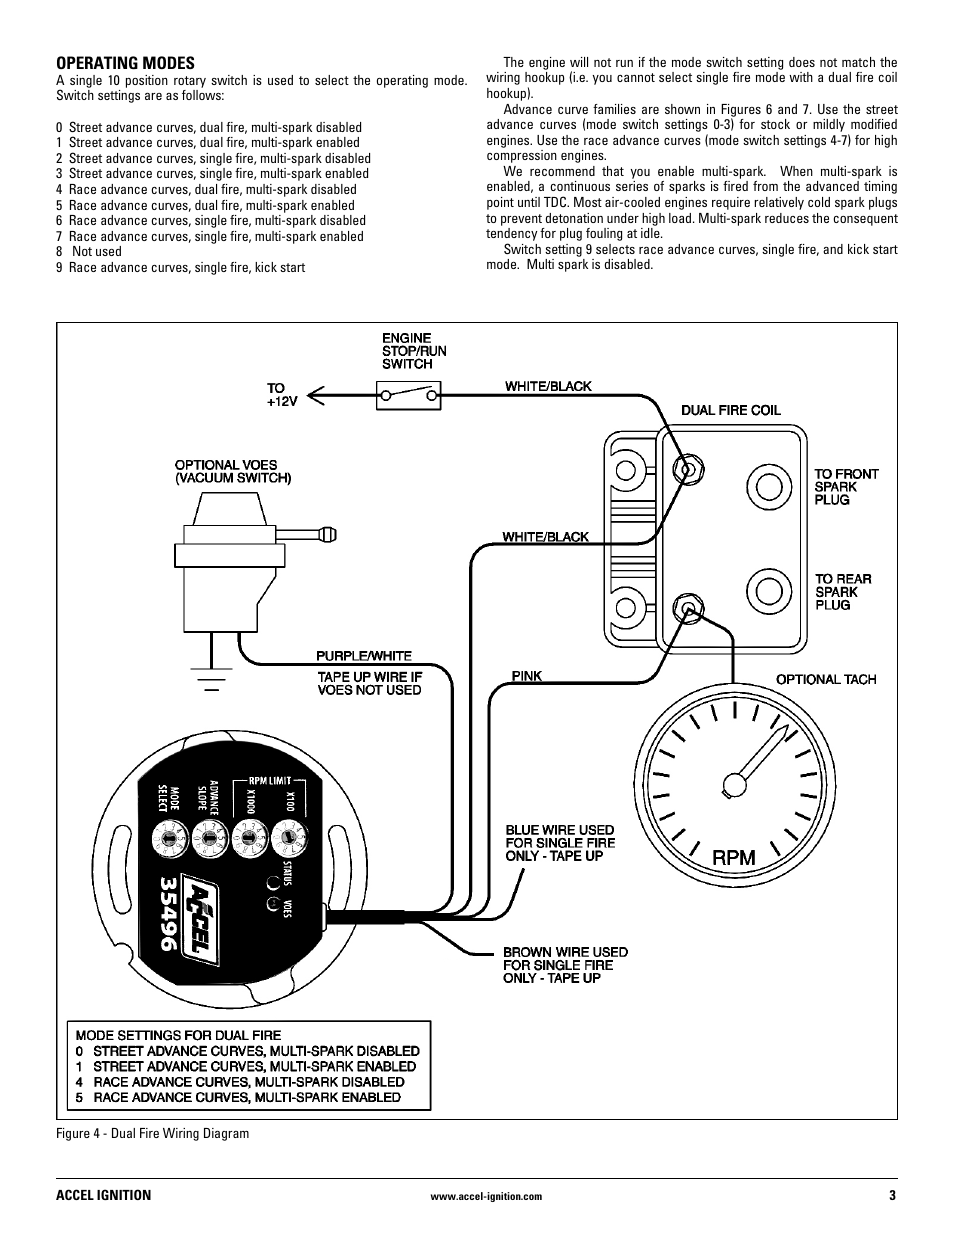 mallory ignition accel ignition 35496 page3 mallory ignition accel ignition 35496 user manual page 3 8 mallory ignition wiring diagram at panicattacktreatment.co